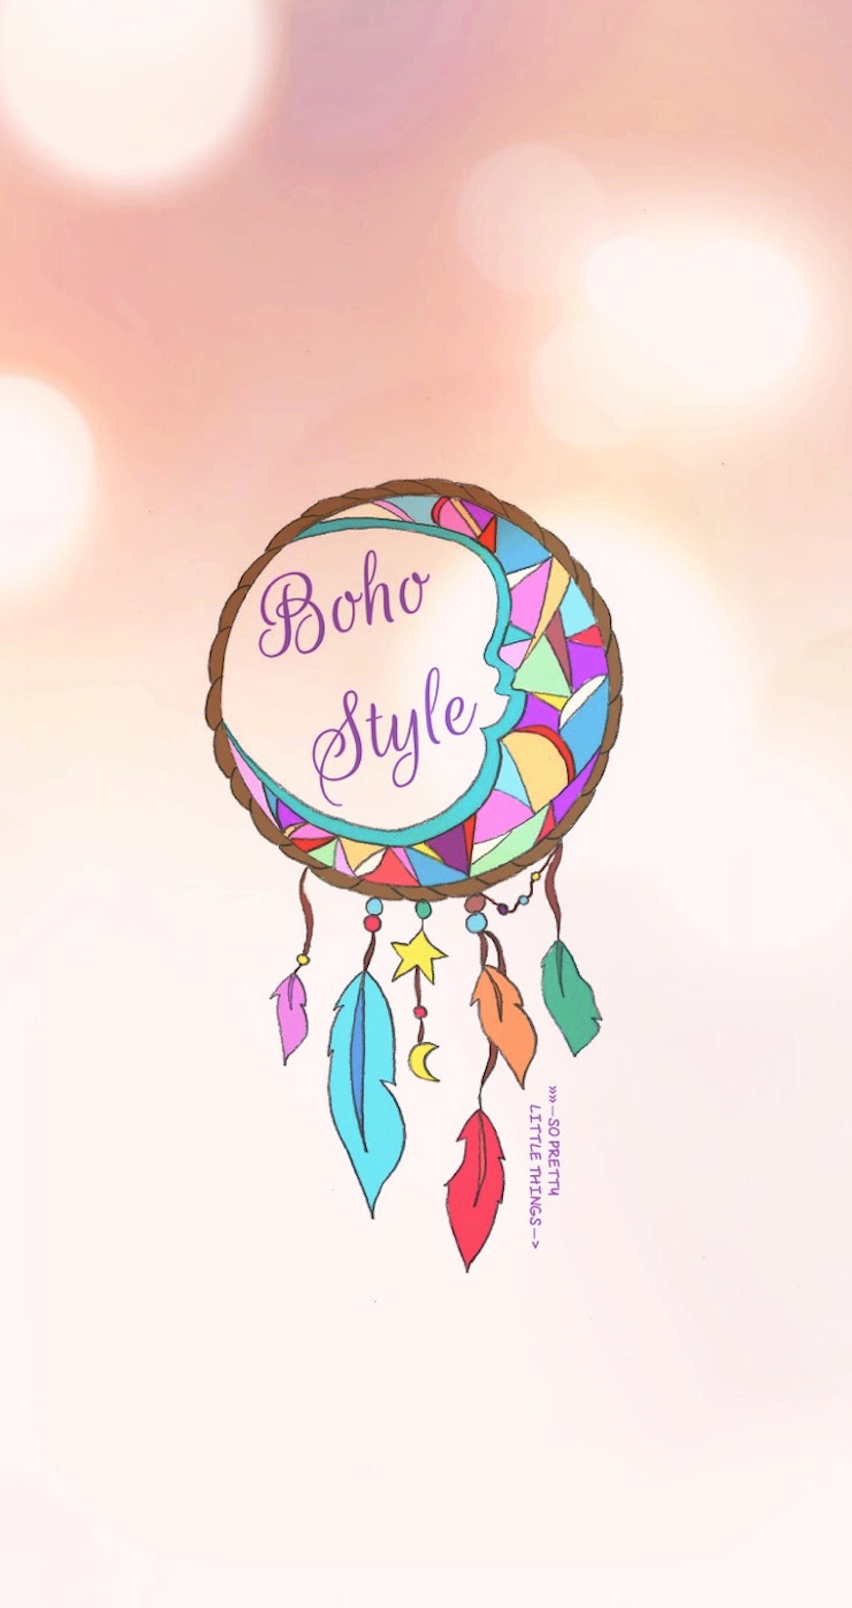 Iphone wallpaper dreamcatcher - Fond D 233 Cran Boho Style So Pretty Little Things